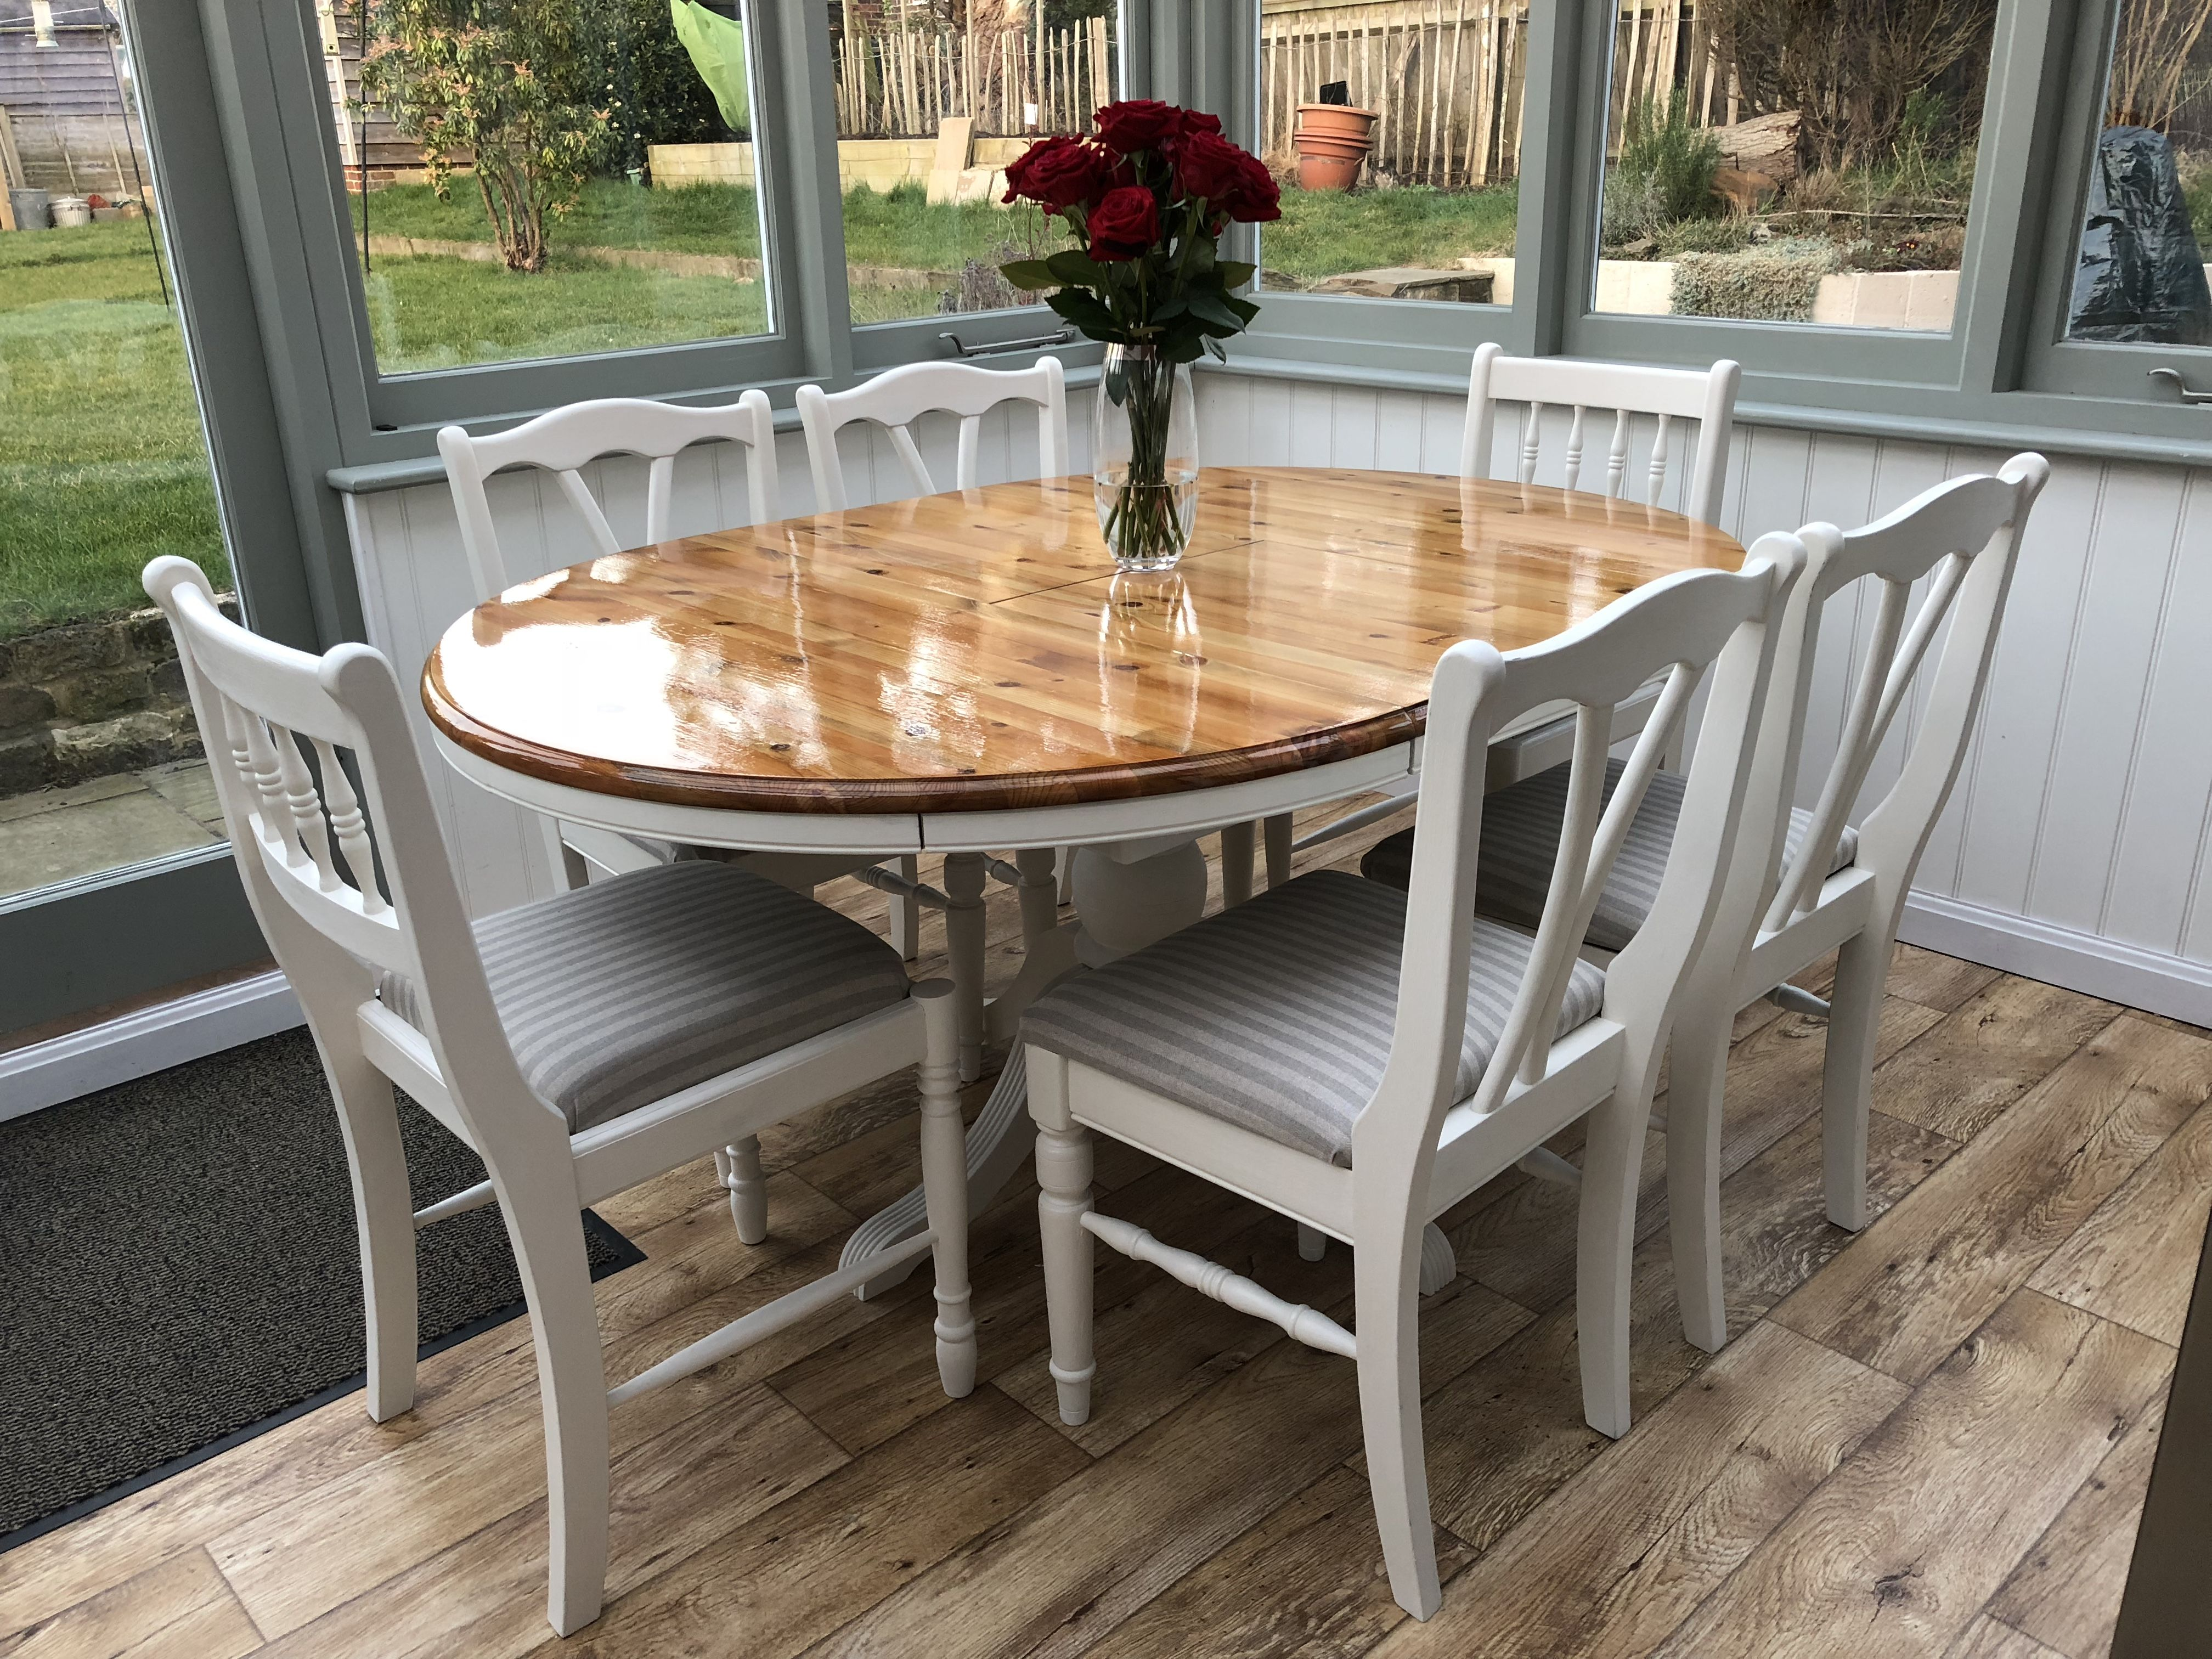 Upcycled Pine Dining Table And Chairs Using Annie Sloan Original